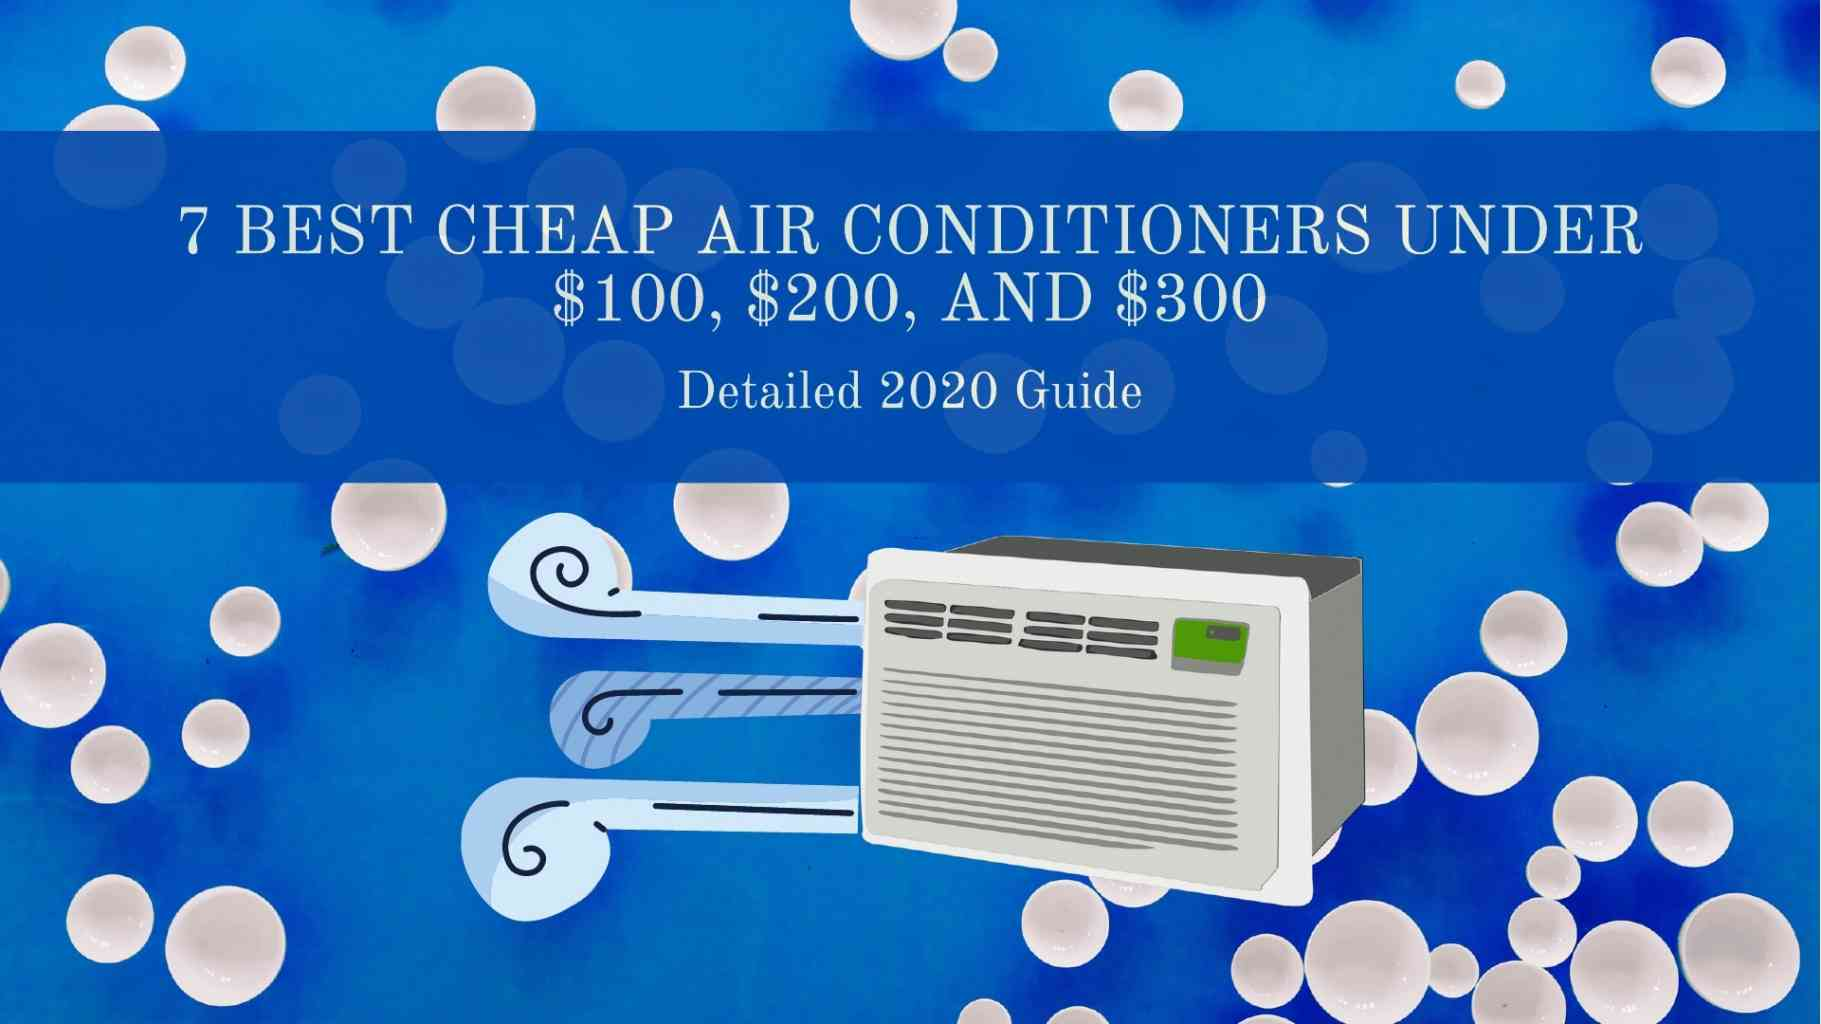 15 best cheap air conditioners under $100, $200, and $300